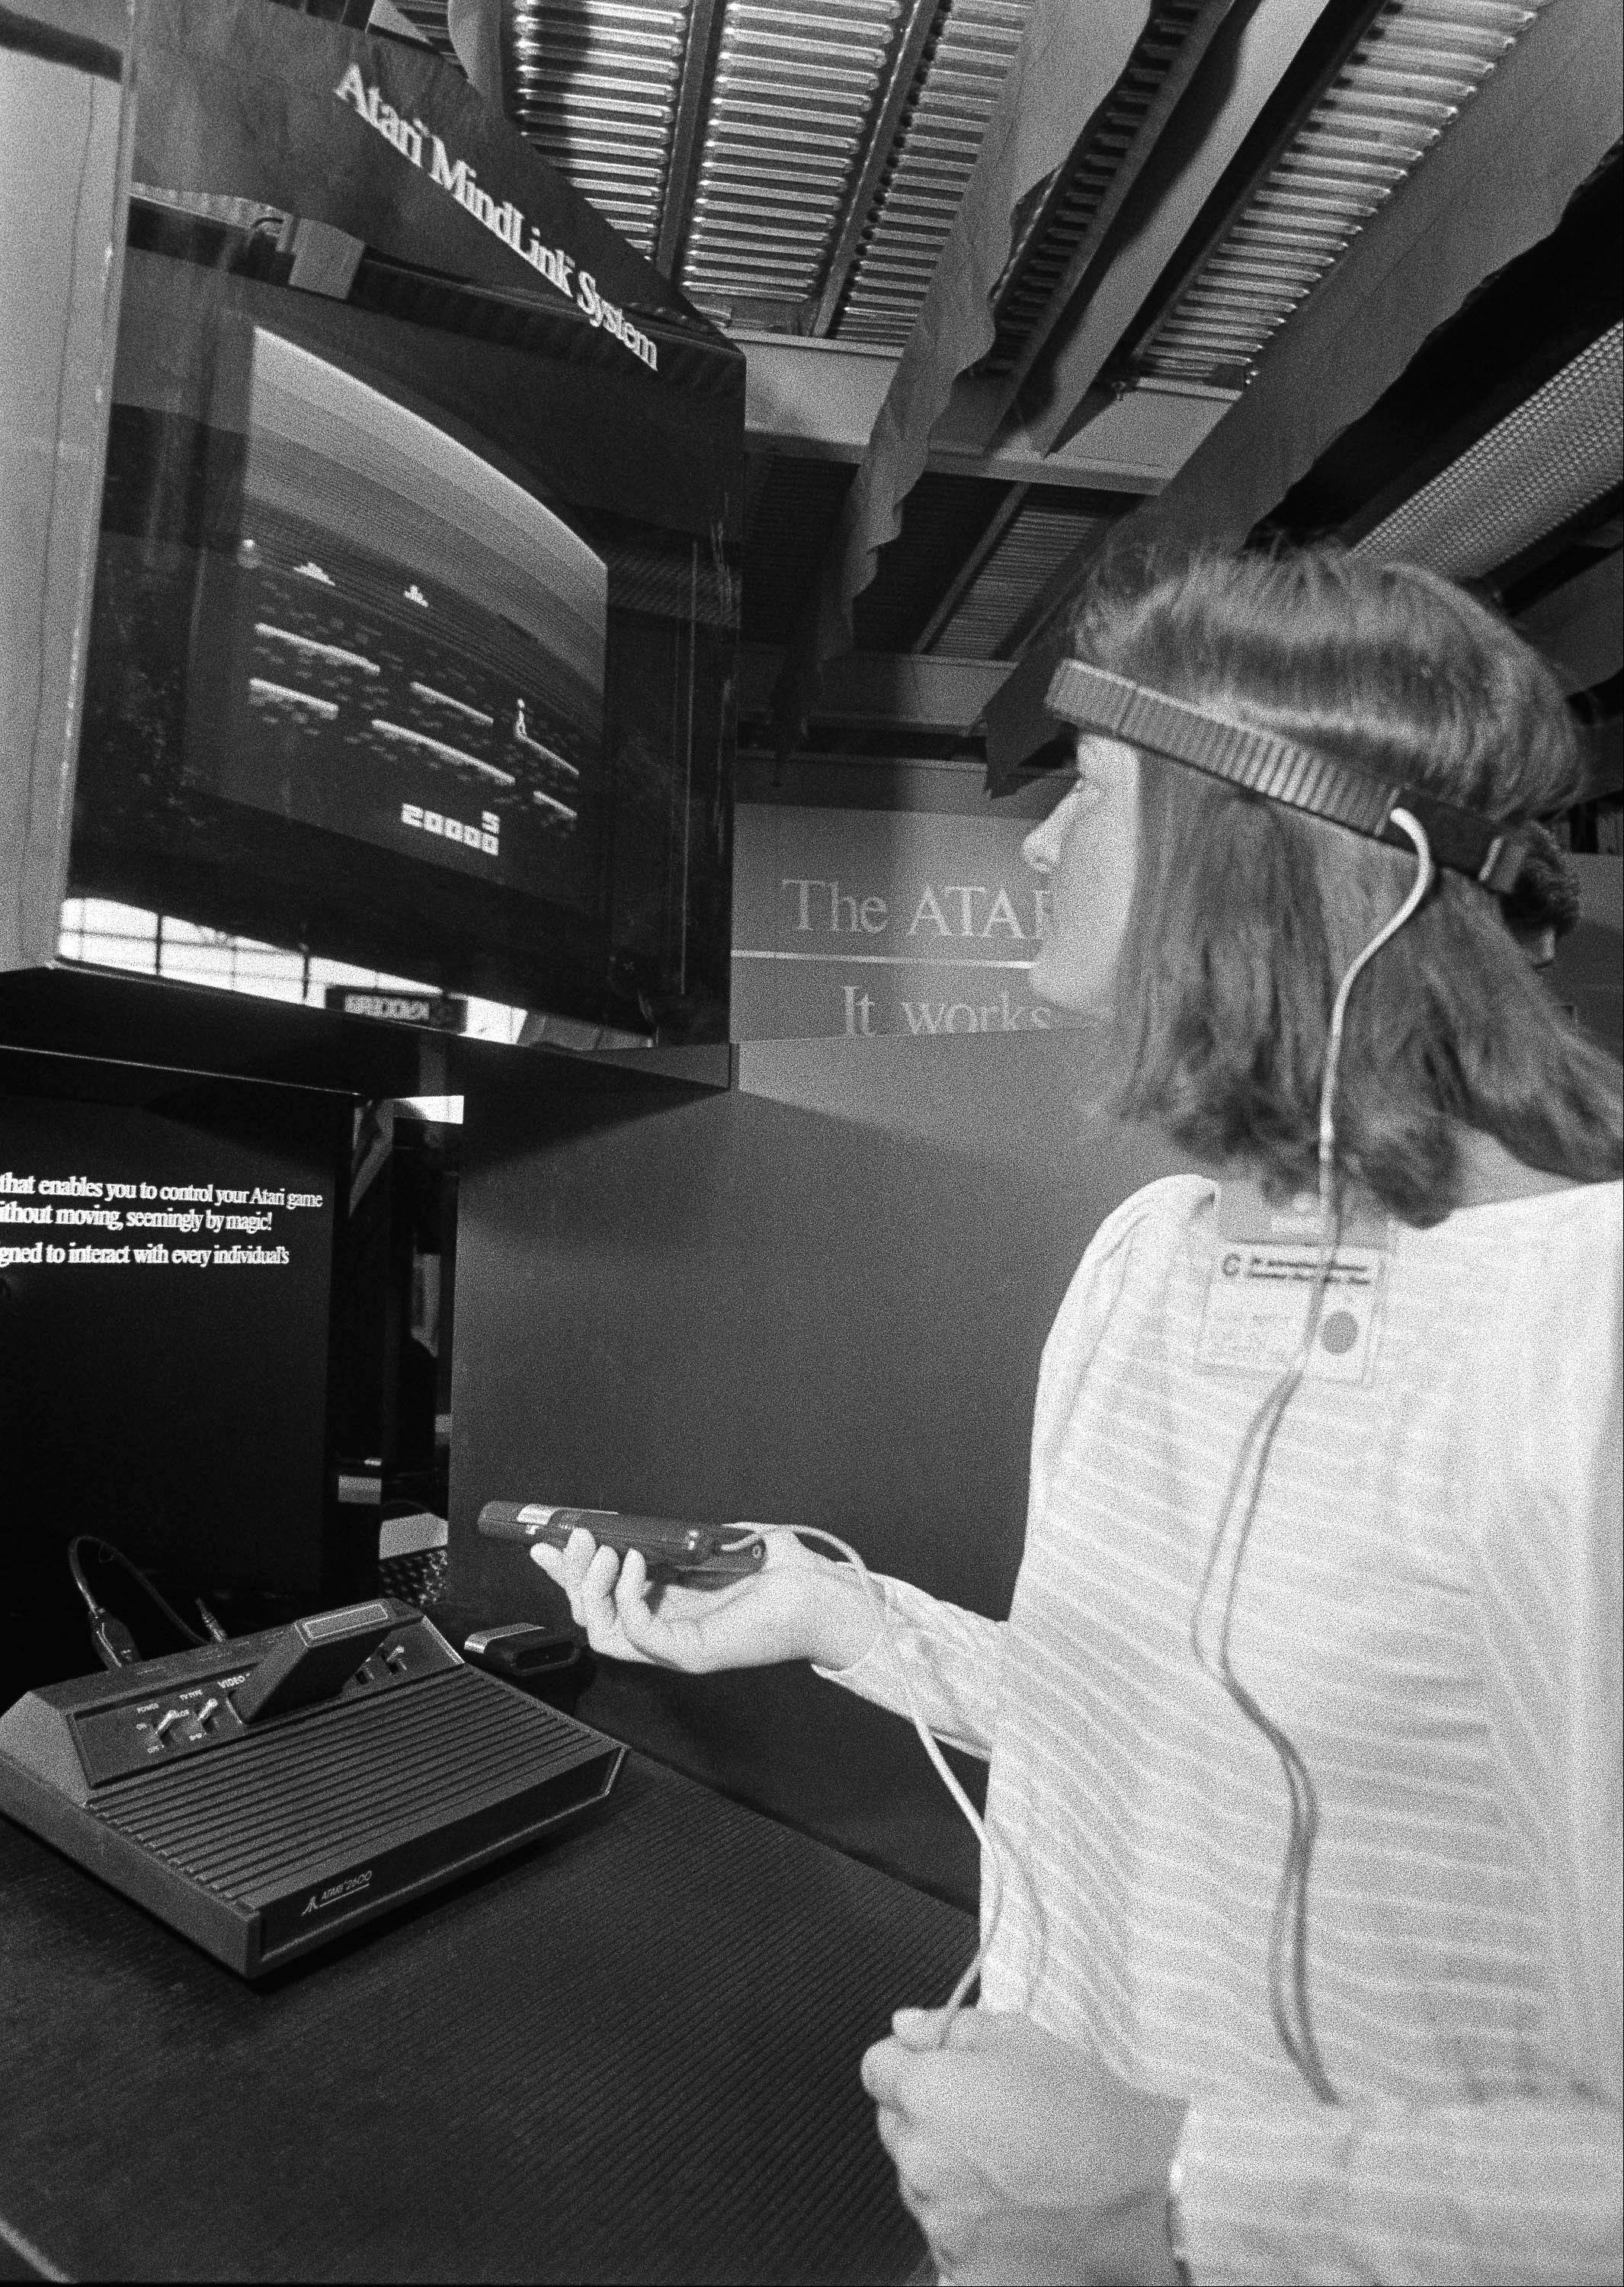 In this June 5, 1984, file photo, a woman in Chicago demonstrates Atari's new game, Mind Link, which utilizes a headband that picks up electrical impulse from the movement of the forehead and transmits them to a receiver attached to a video game or home computer console.